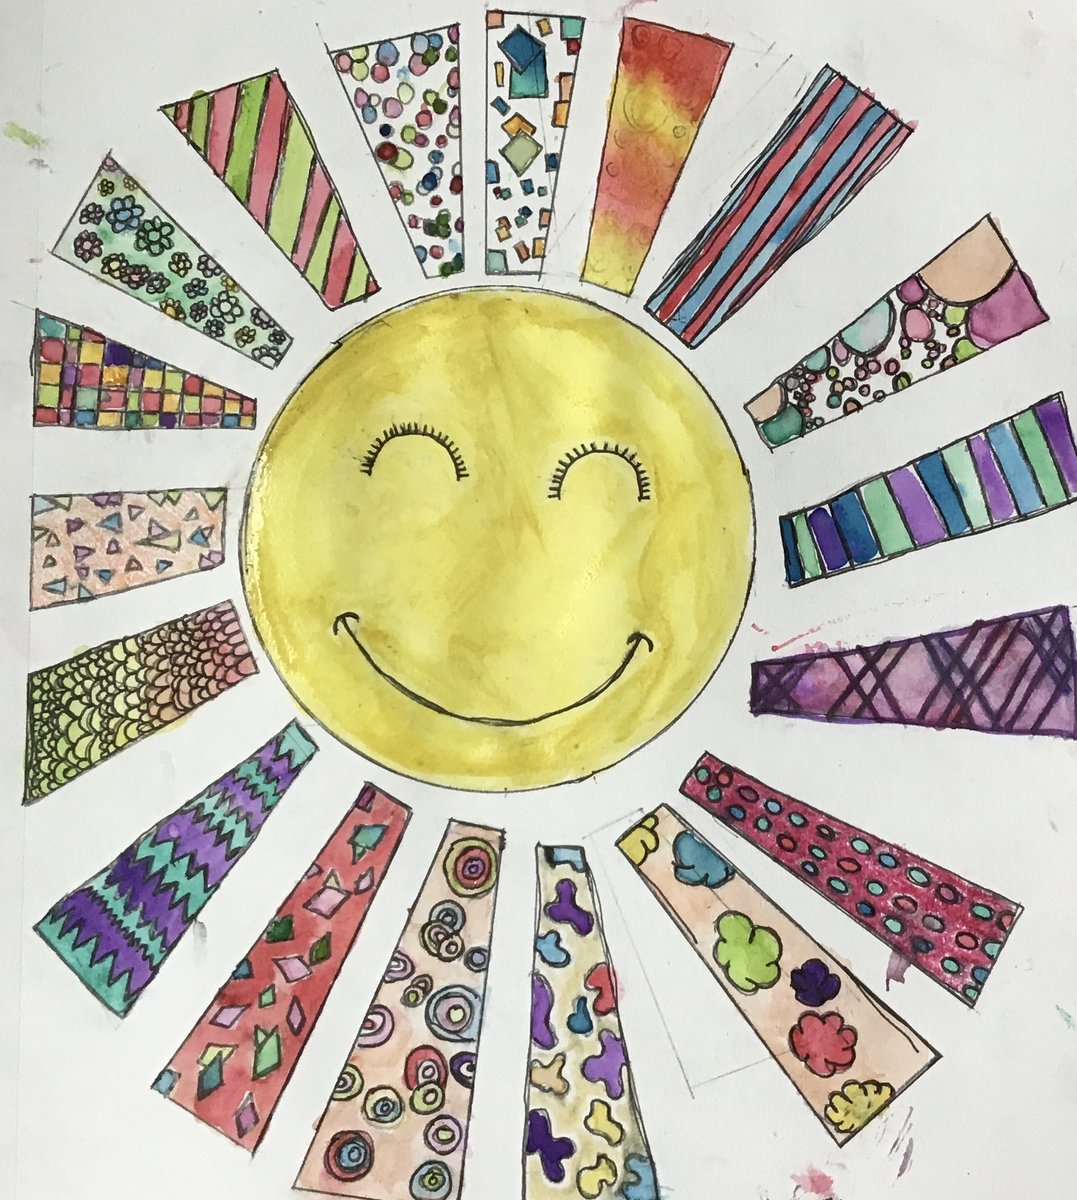 RT <a target='_blank' href='http://twitter.com/SwansonMSArt'>@SwansonMSArt</a>: Beautiful Artwork! It makes me smile! <a target='_blank' href='https://t.co/RjCWkM2rYR'>https://t.co/RjCWkM2rYR</a>